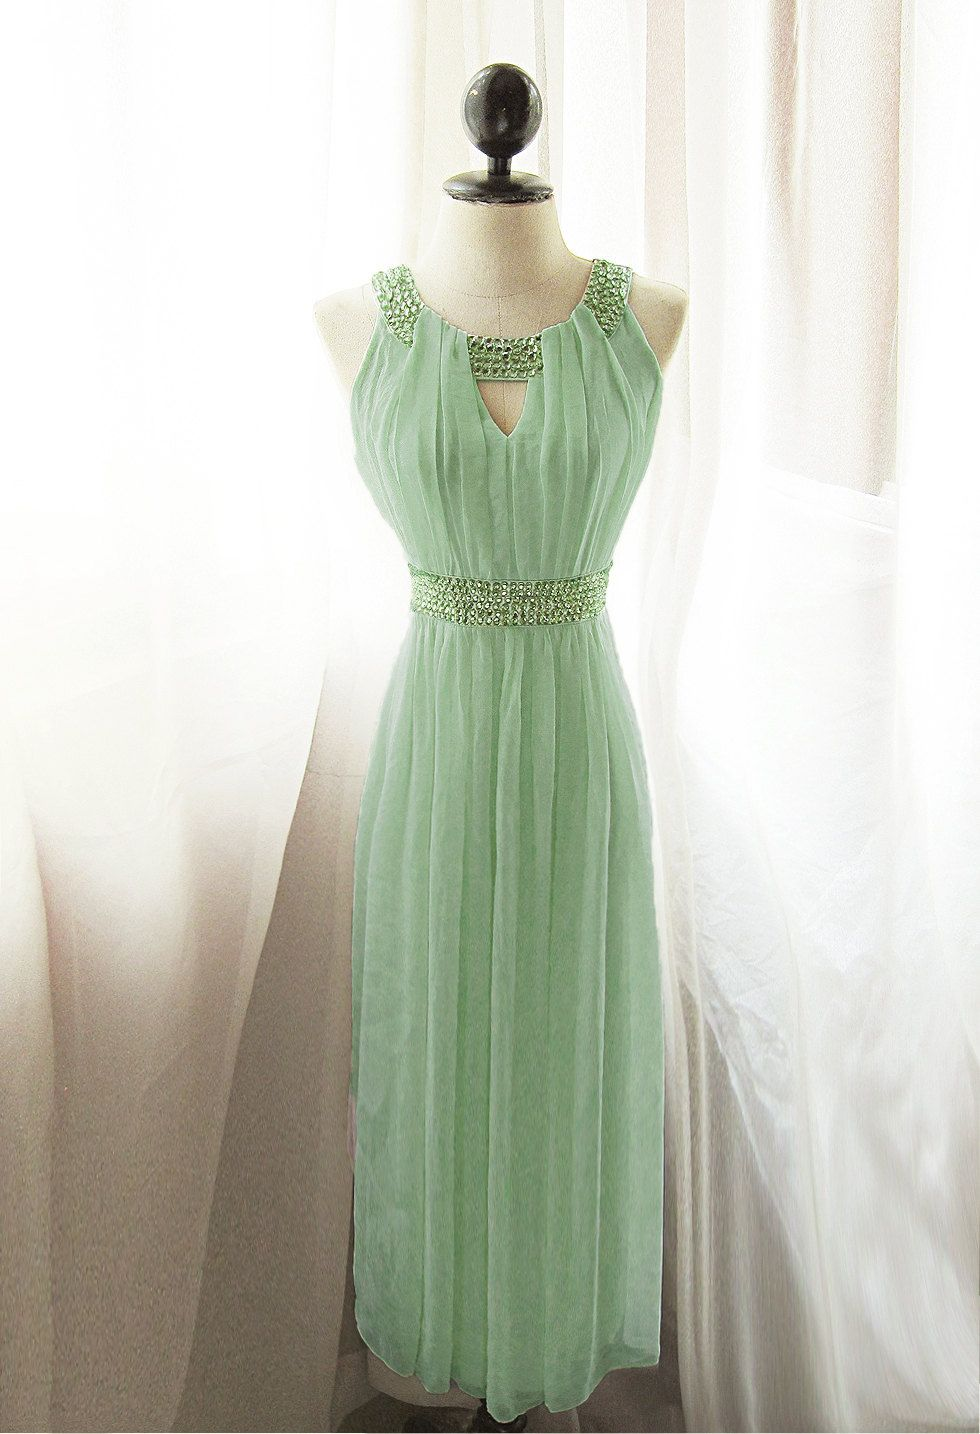 long mint chiffon dress - bridesmaid dress for Caity's wedding?